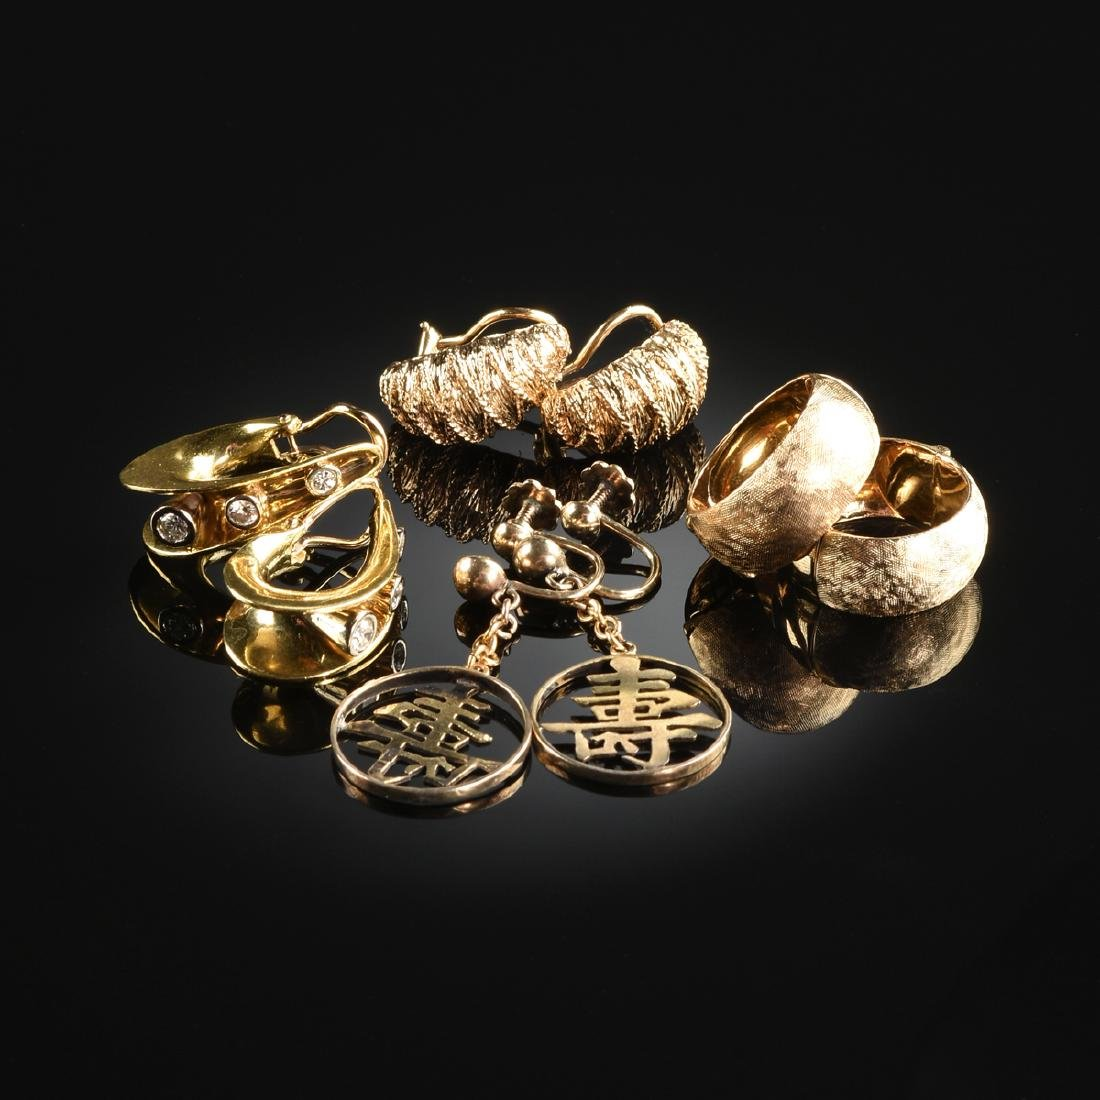 A GROUP OF FOUR PAIRS OF 18K YELLOW GOLD AND 14K YELLOW